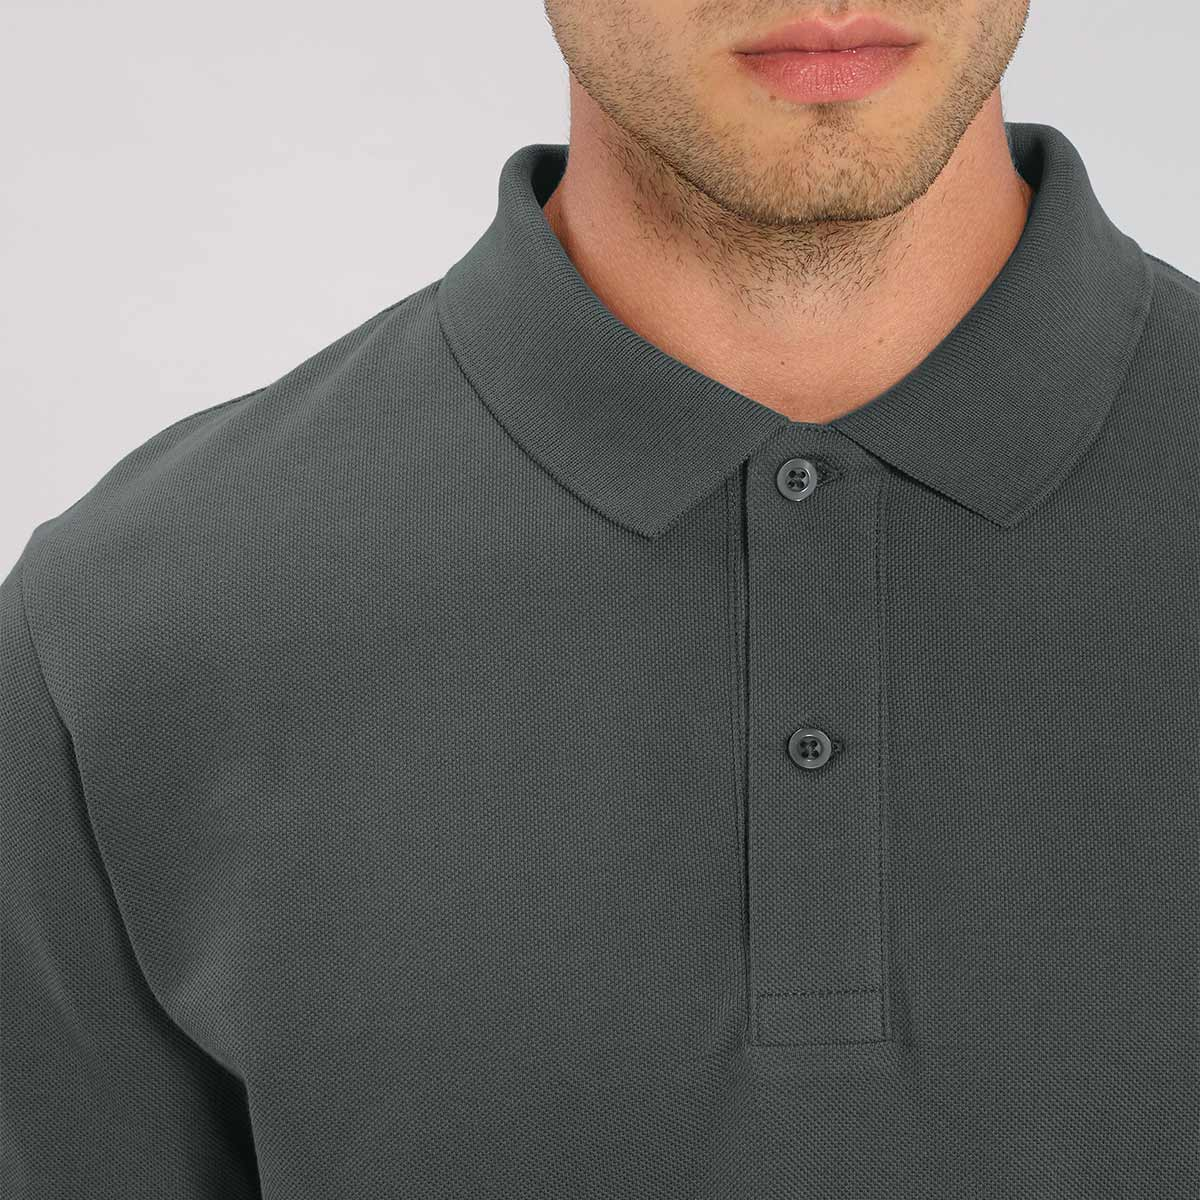 Review Stanley Stella Dedicator Polo Shirt - Dedicator Styles